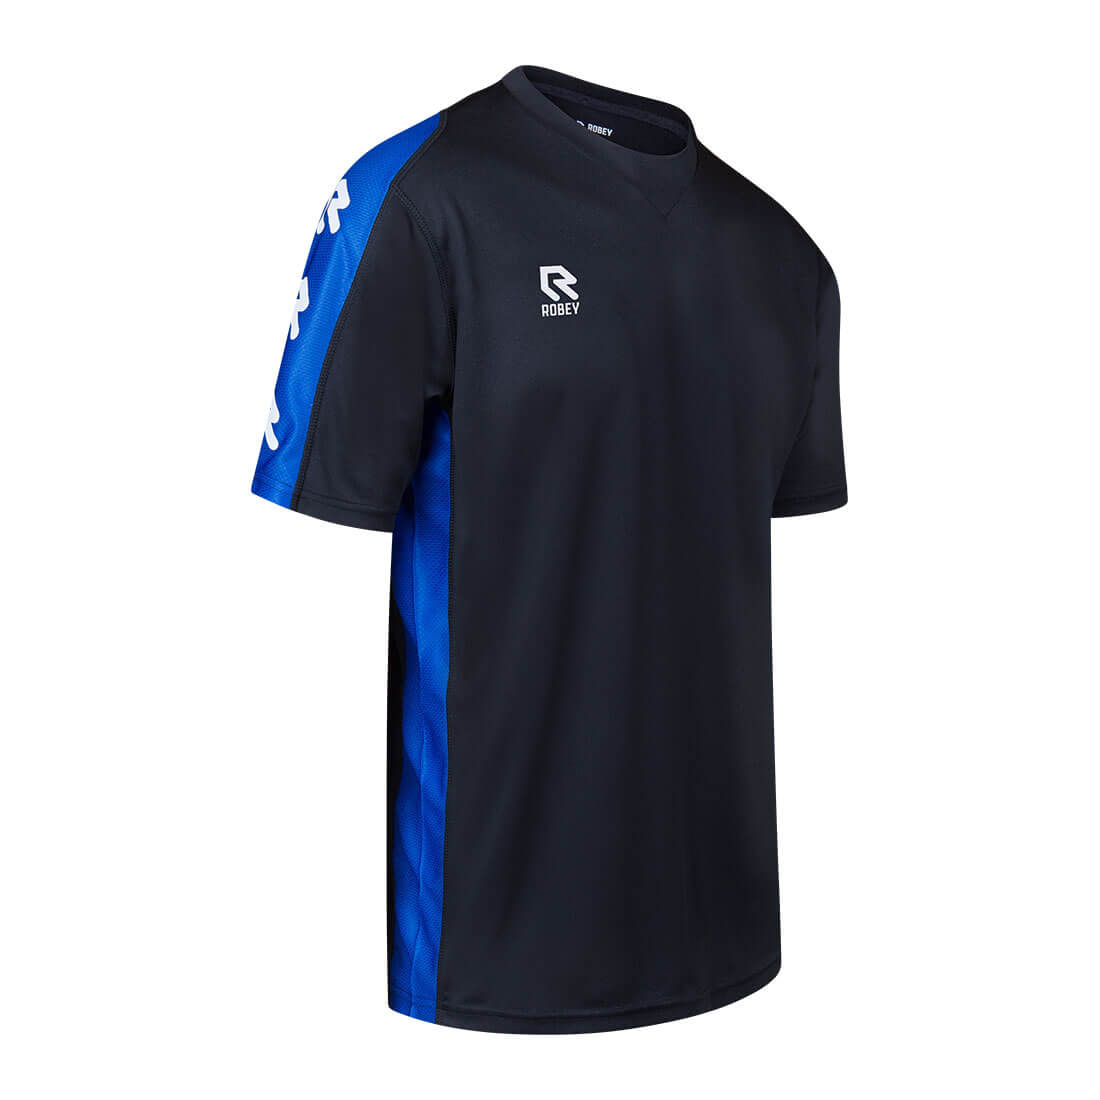 Robey Performance Shirt - Black Royal Blue